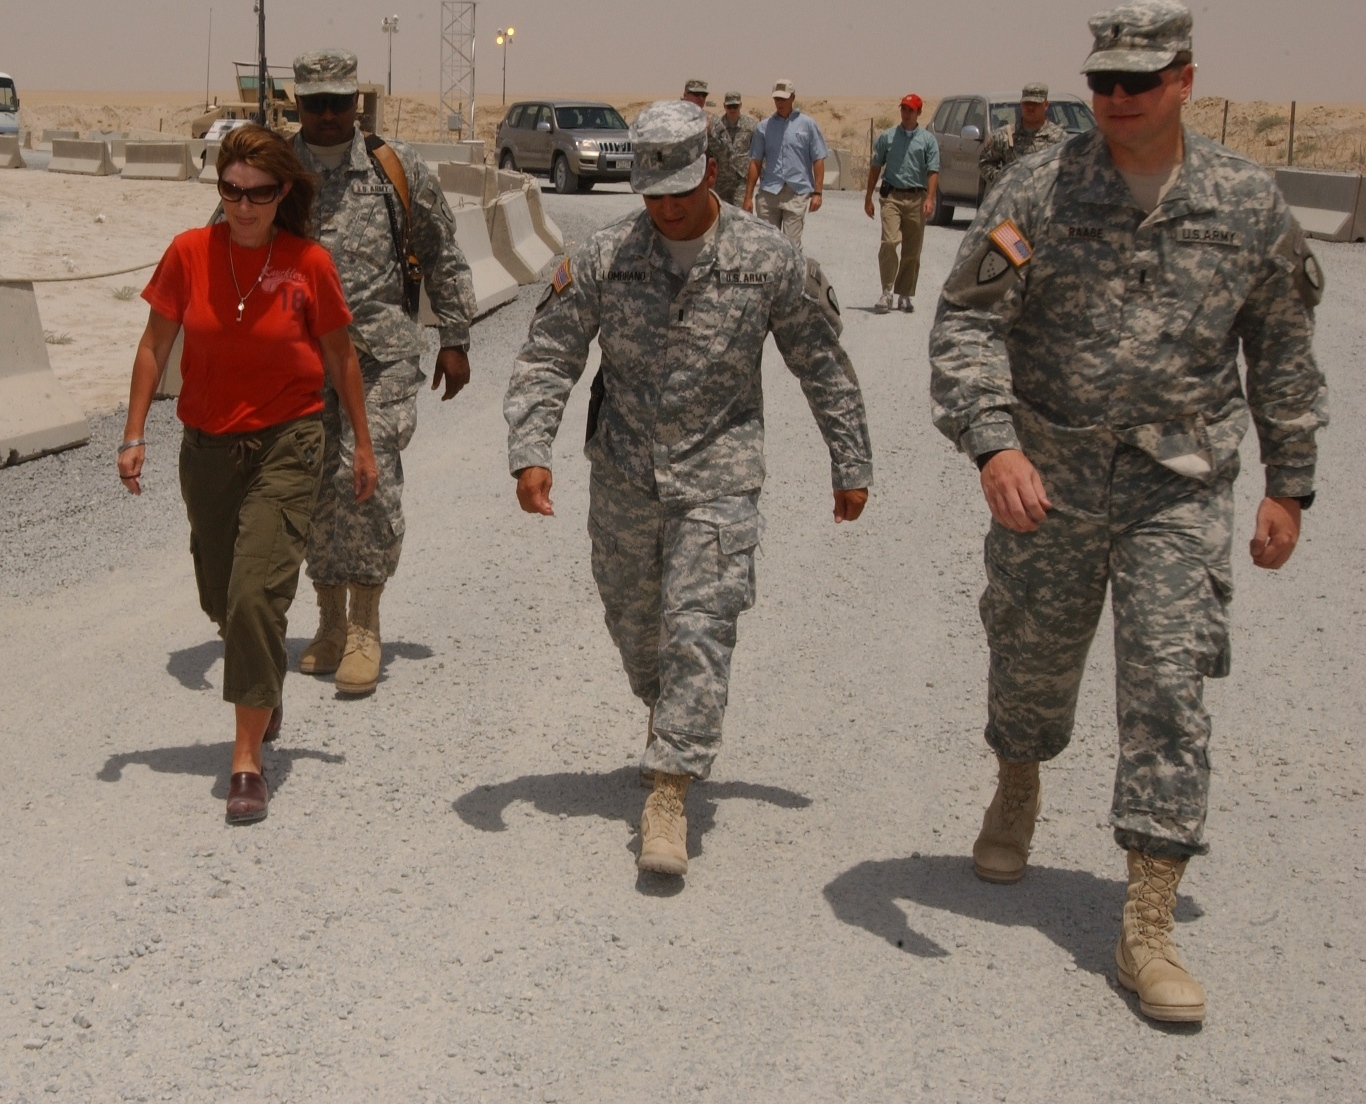 https://i2.wp.com/upload.wikimedia.org/wikipedia/commons/4/4e/Sarah_Palin_Kuwait_1.jpg